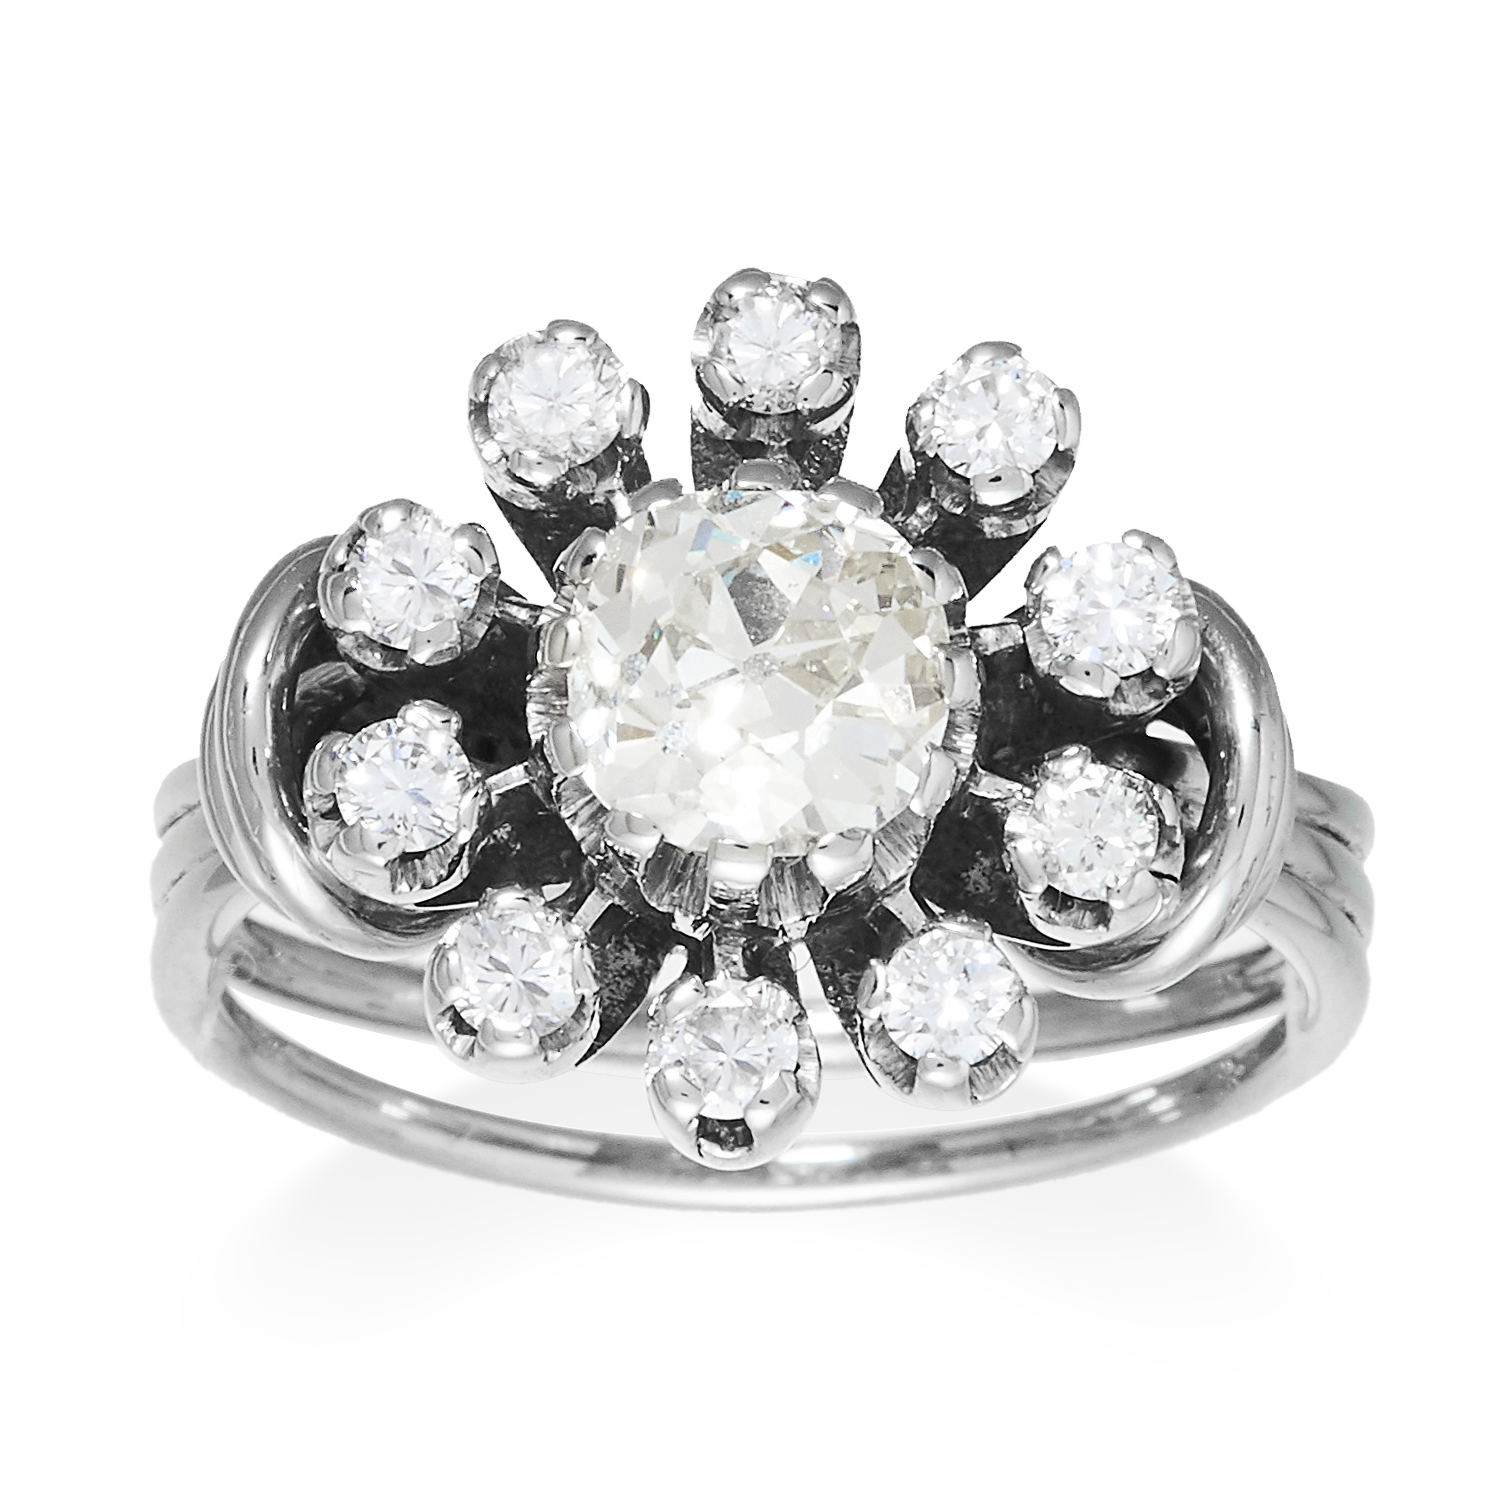 A DIAMOND CLUSTER DRESS RING in platinum or white gold, set with an old cut diamond of 1.20 carats